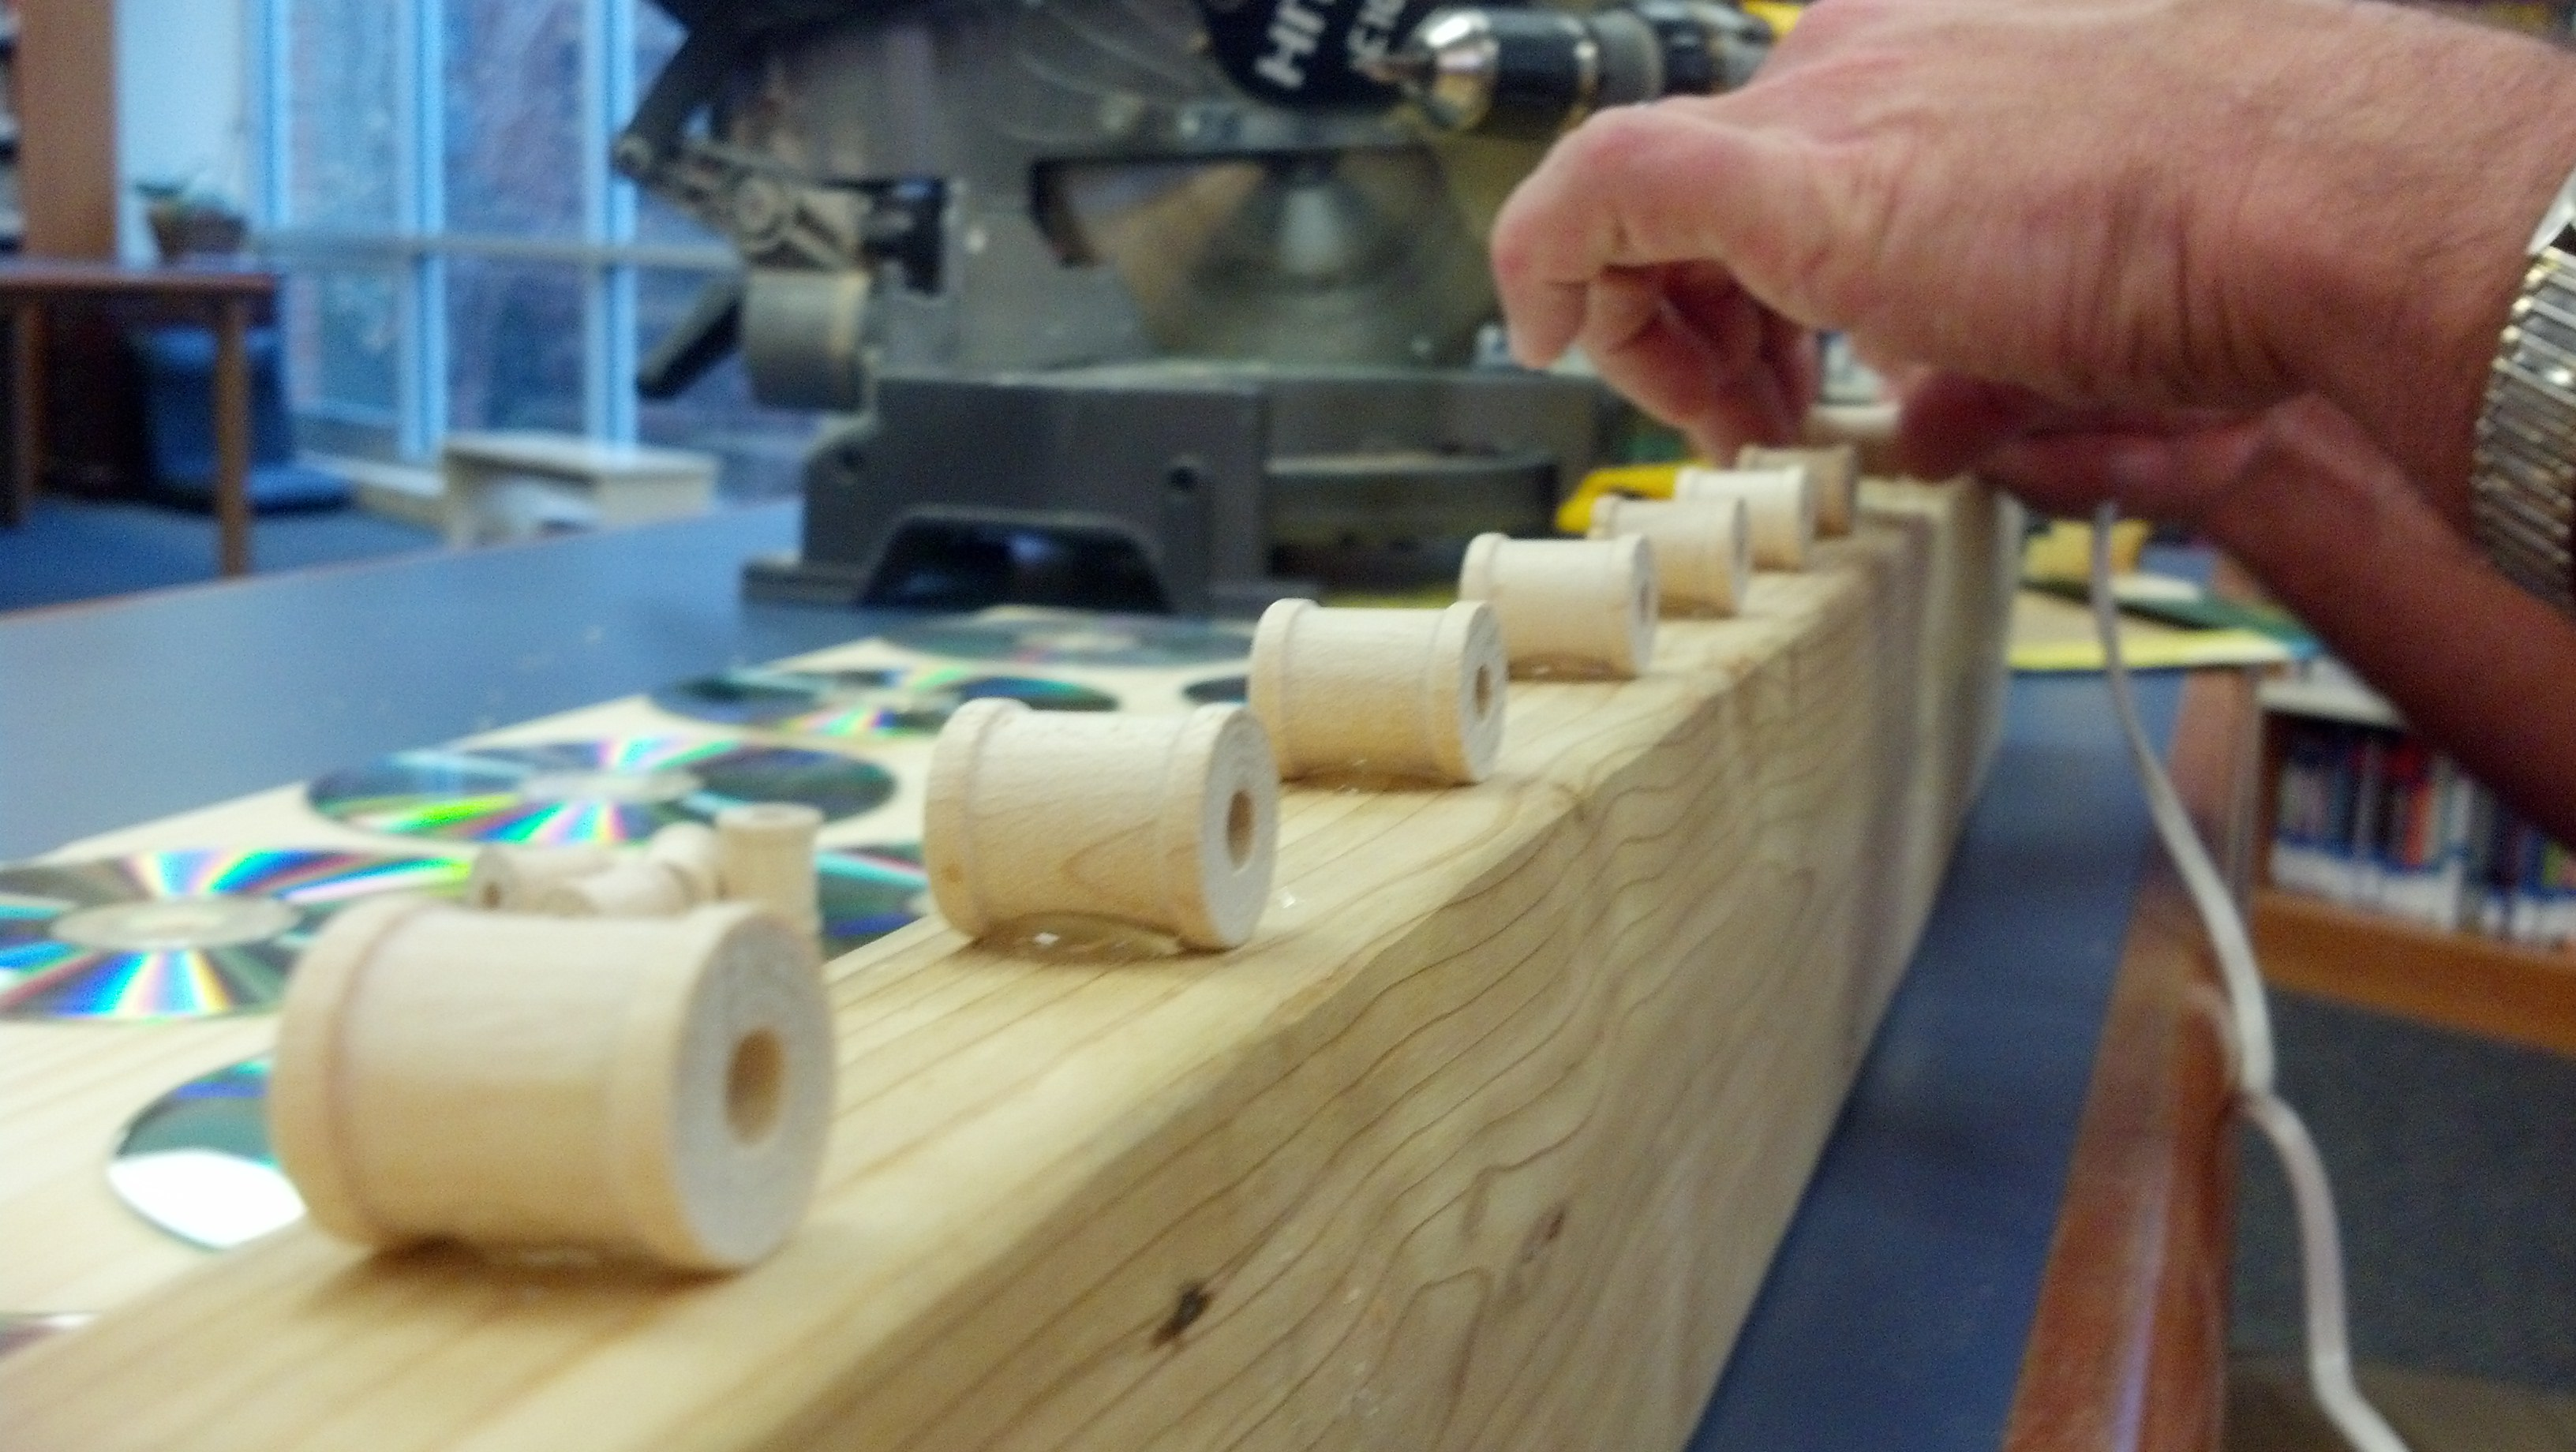 Picture of Glue on the Wooden Spools